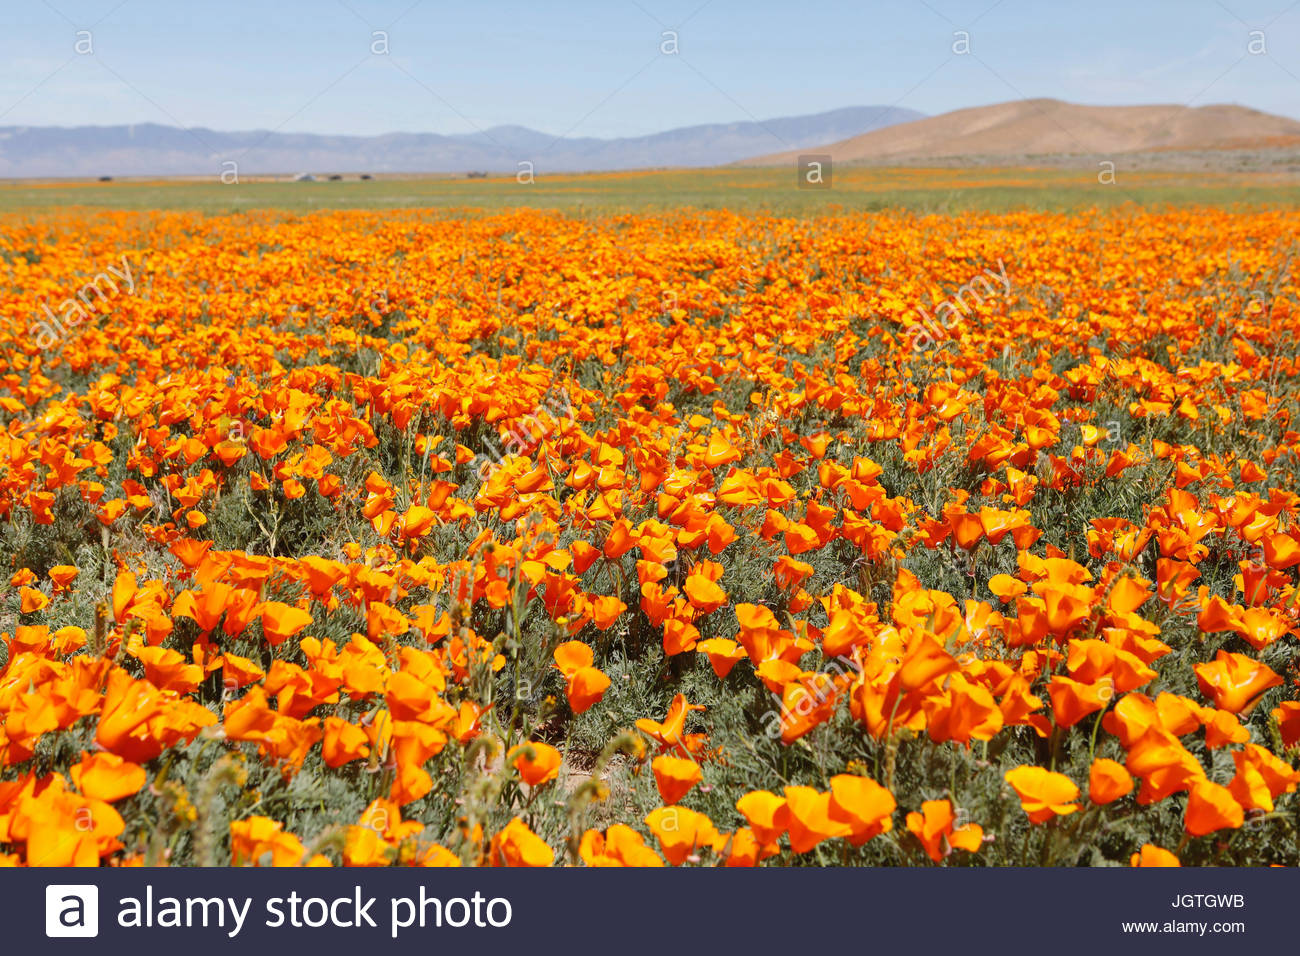 A field of poppies in Antelope Valley California Poppy Reserve. - Stock Image